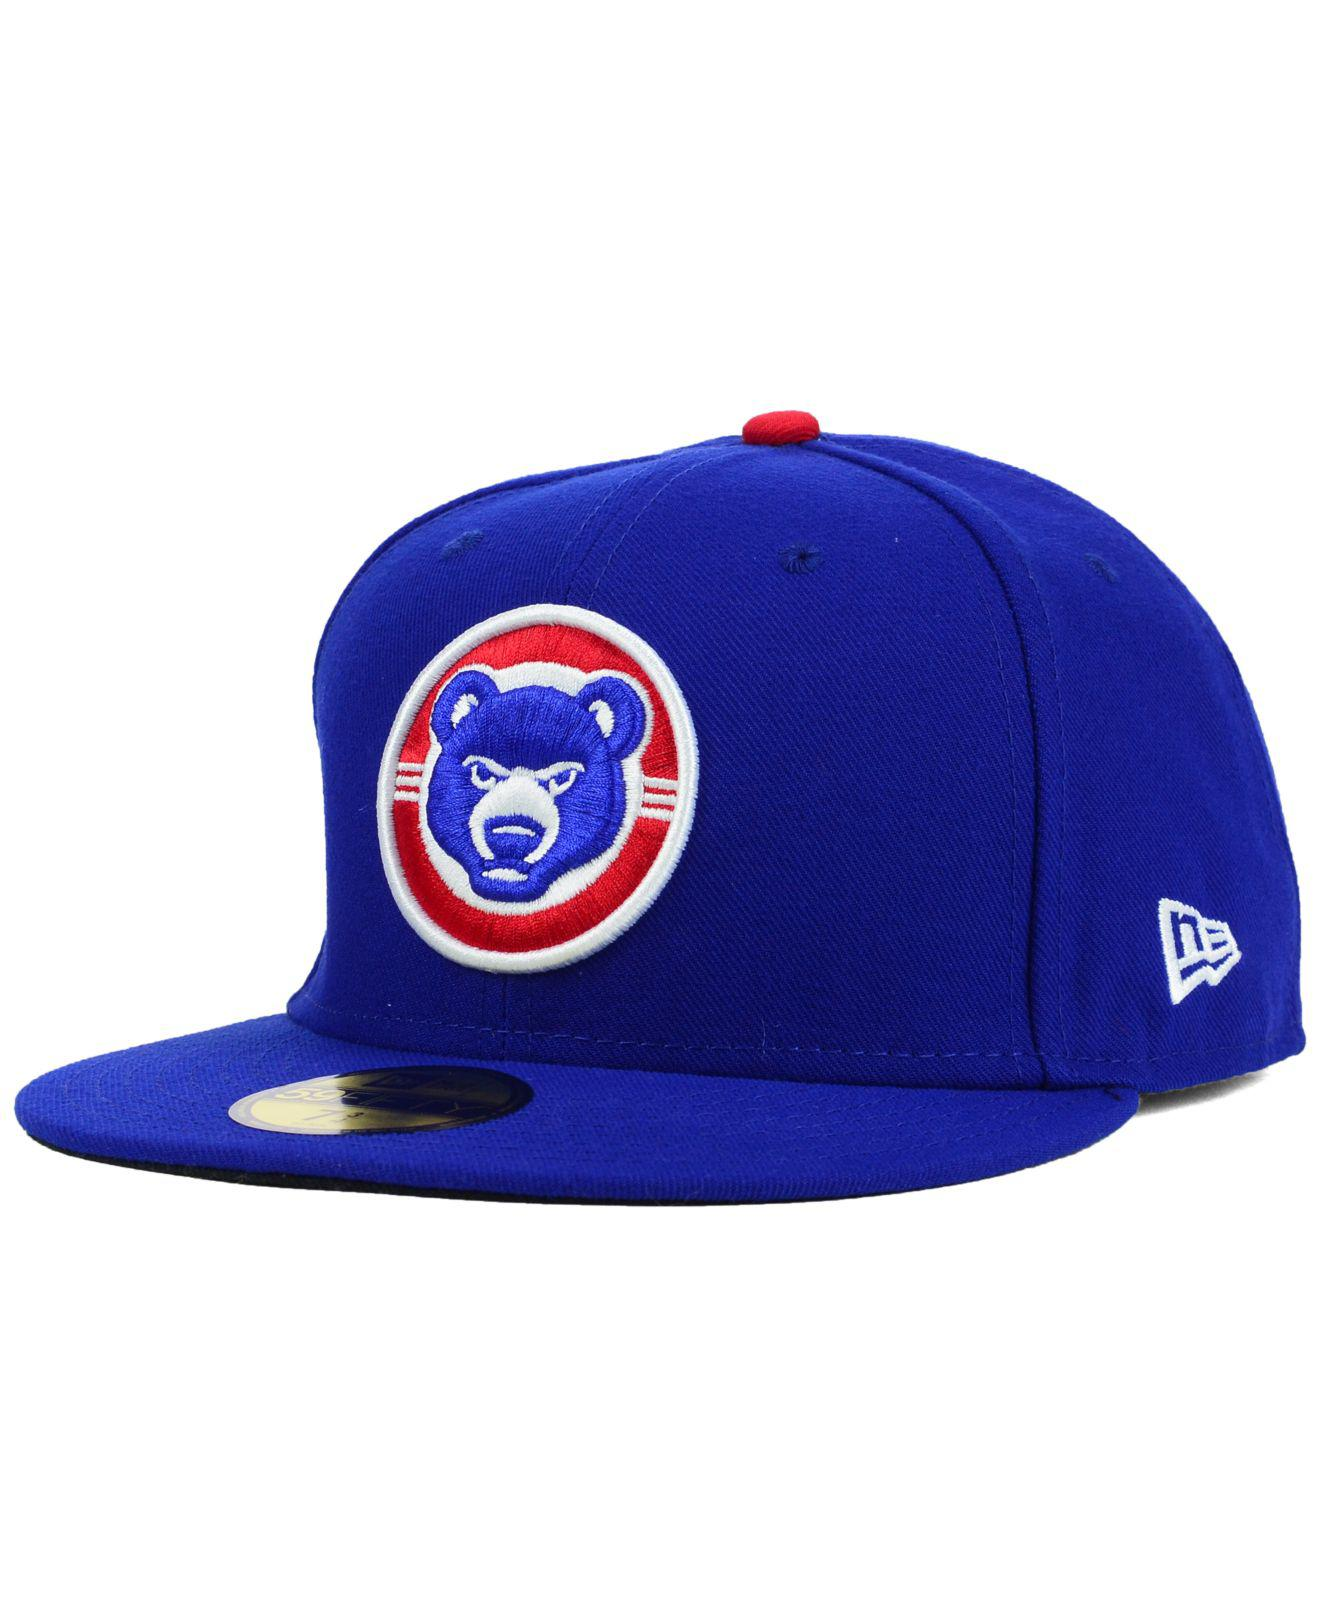 d03fd81abad Lyst - KTZ South Bend Cubs 59fifty Cap in Blue for Men